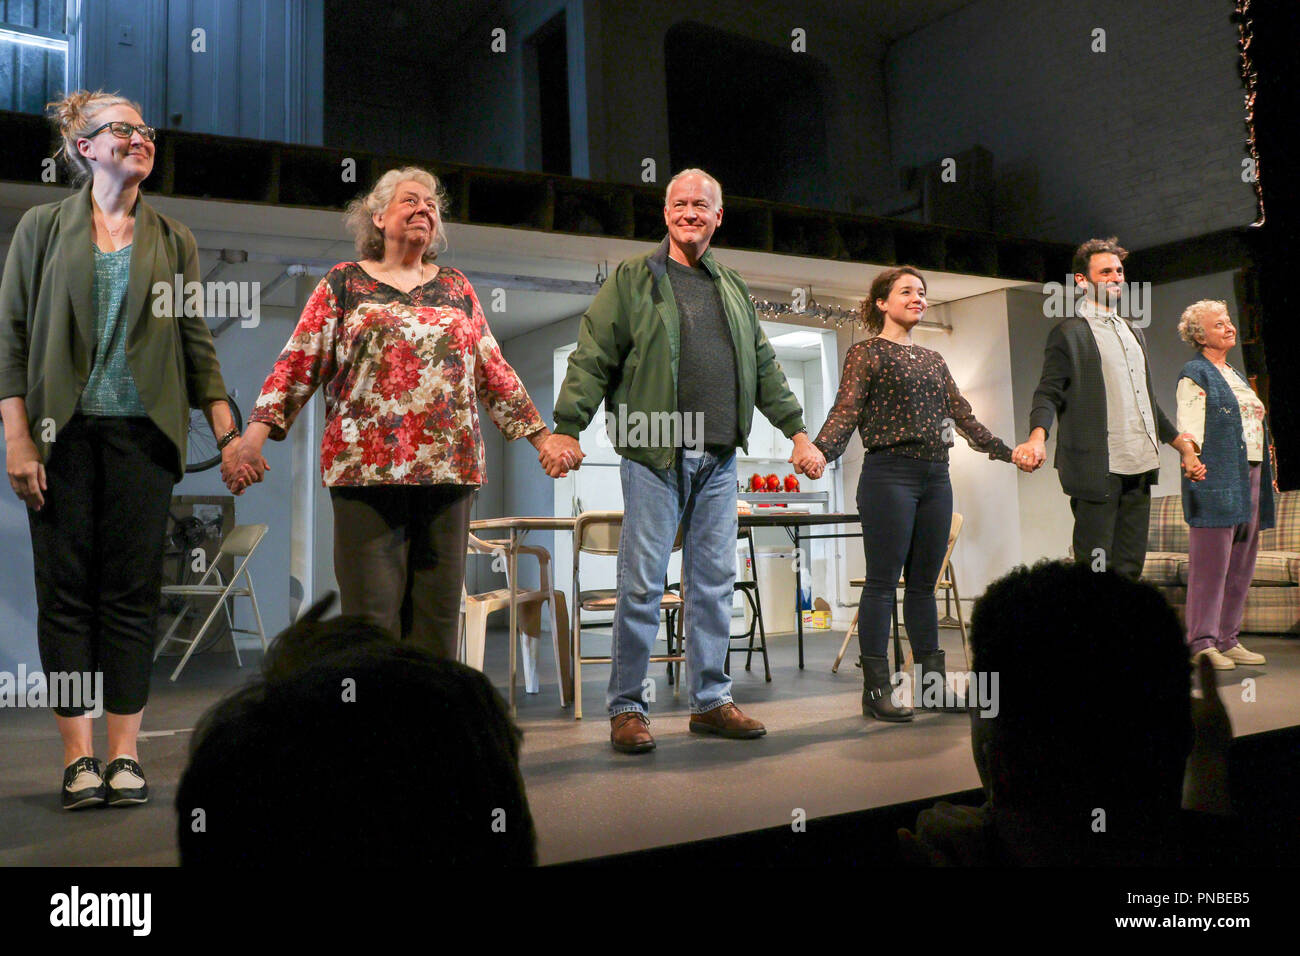 Please curtain call of the cast of The Humans by Stephen Karam at the Hampstead Theatre, London, England, UK - Stock Image